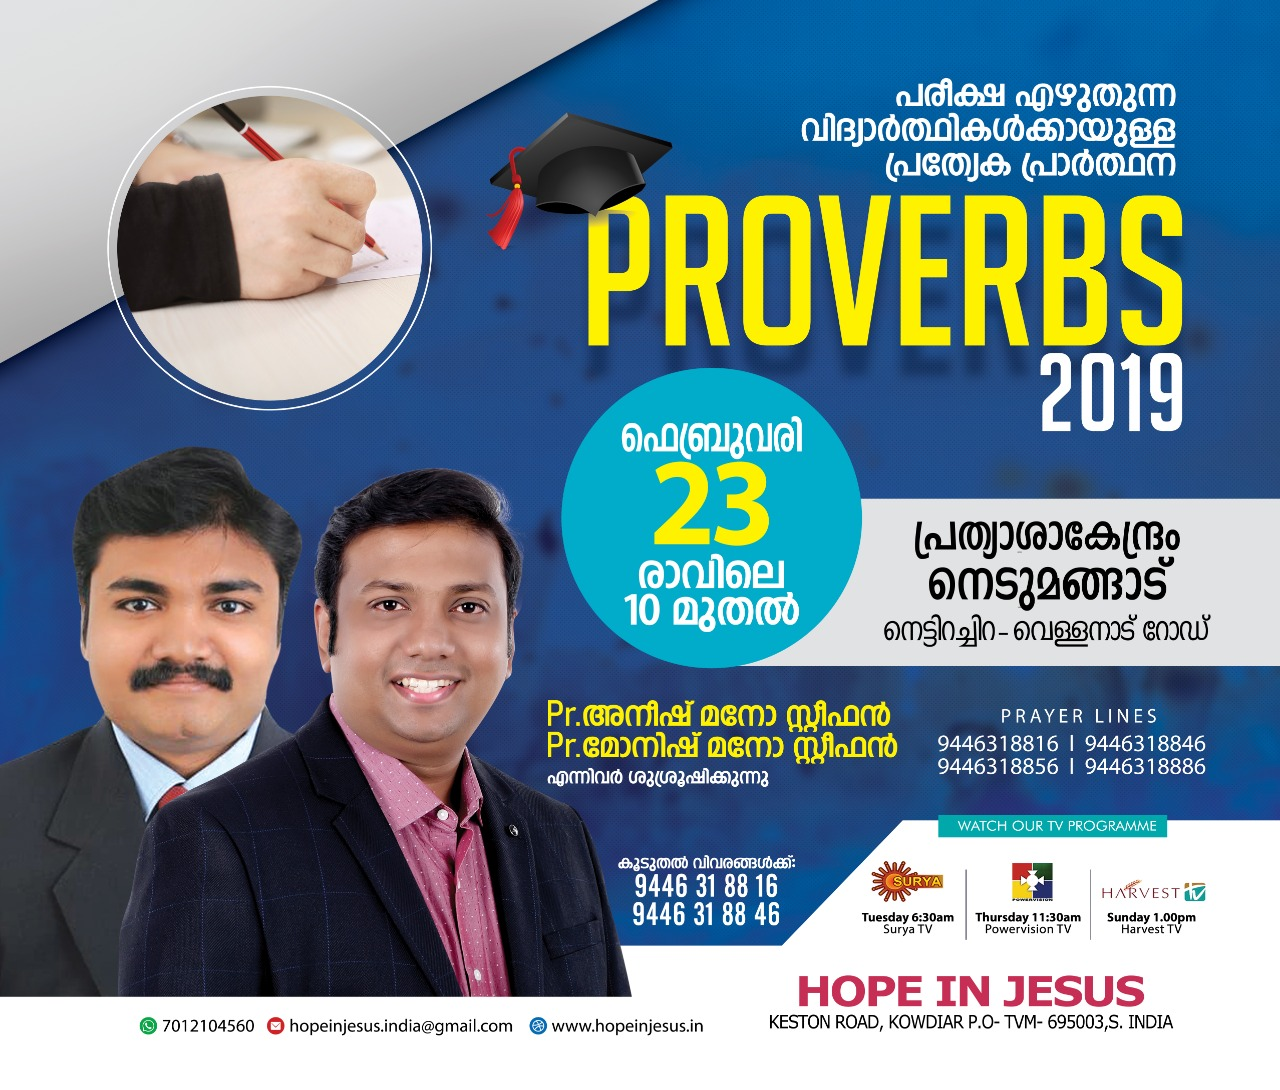 Students Examination Prayer, PROVERBS 2019 in Trivandrum